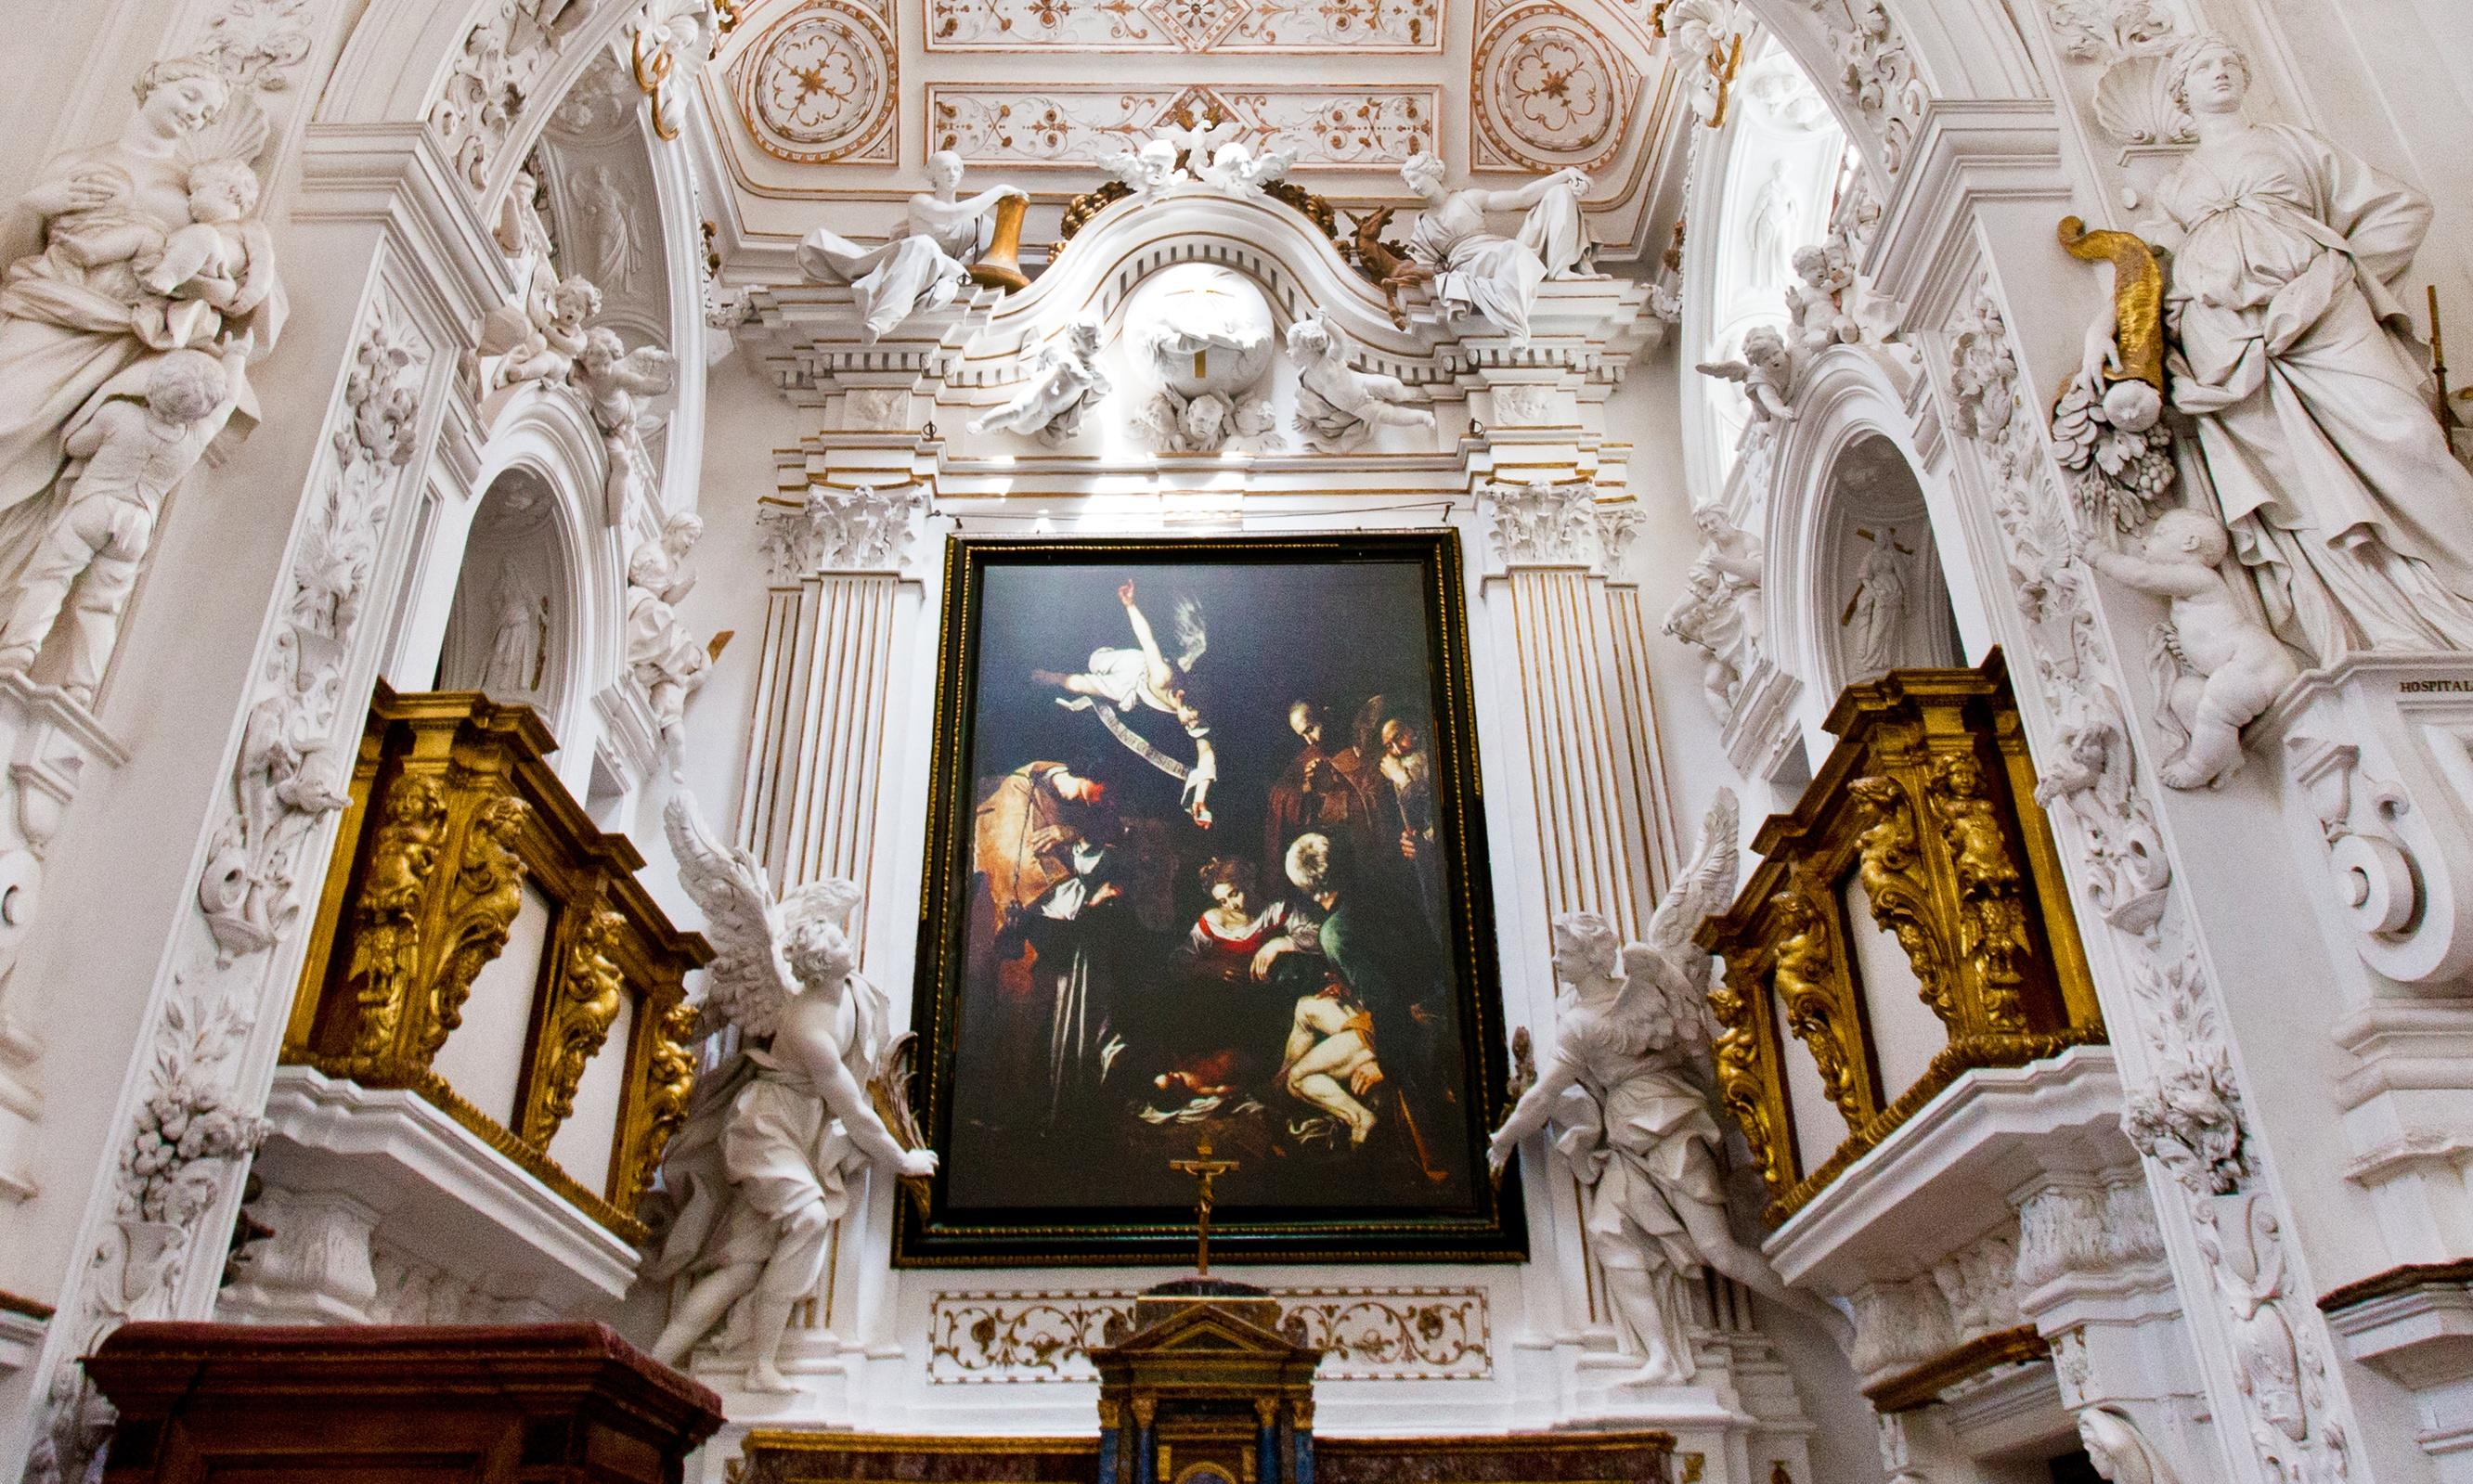 Theft of Caravaggio in Sicily still shrouded in mystery 50 years on